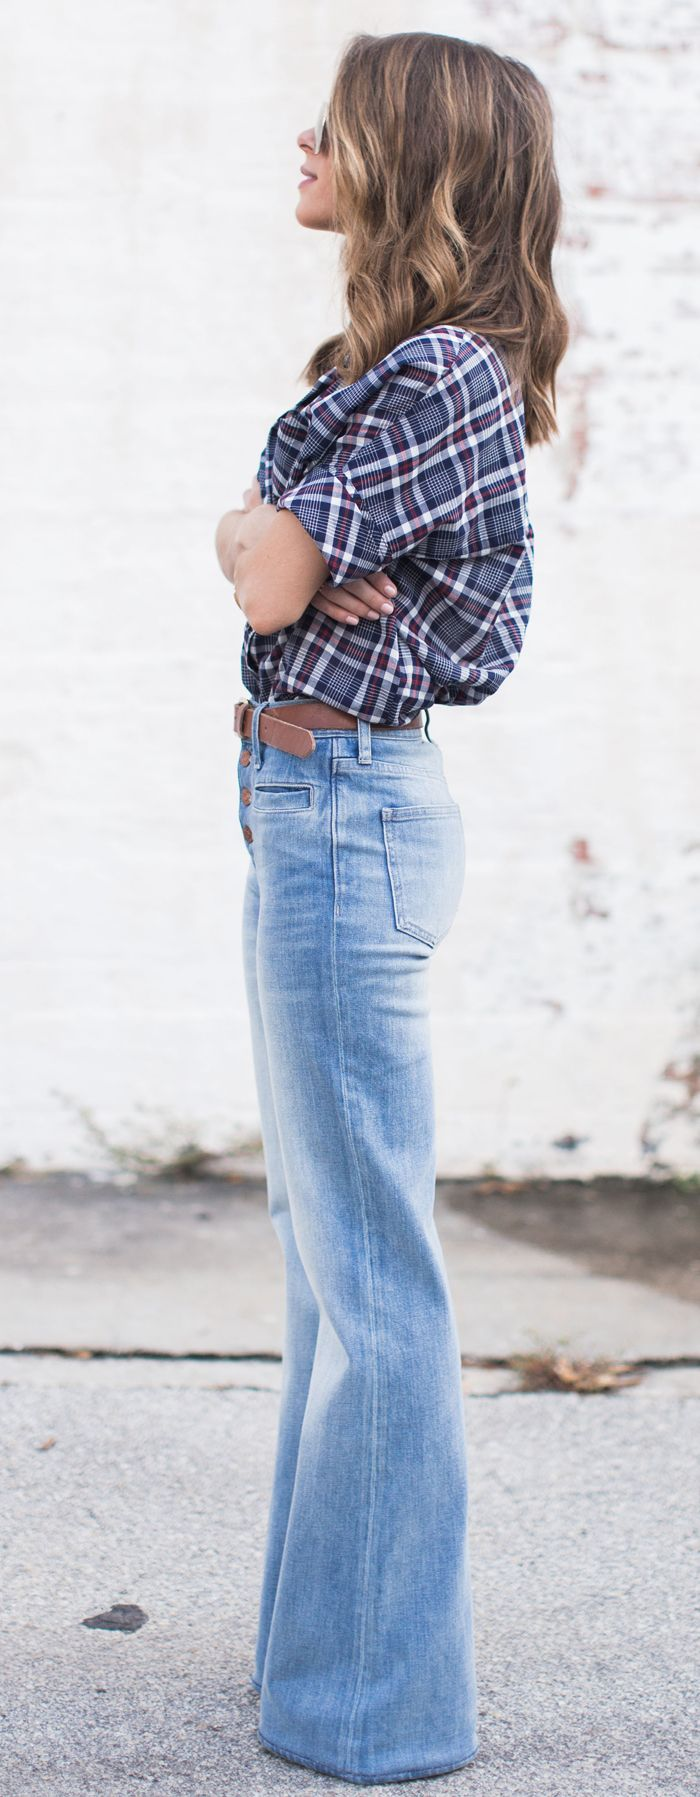 Casual flannel outfits   best My Style images on Pinterest  Outfit ideas Summer outfit